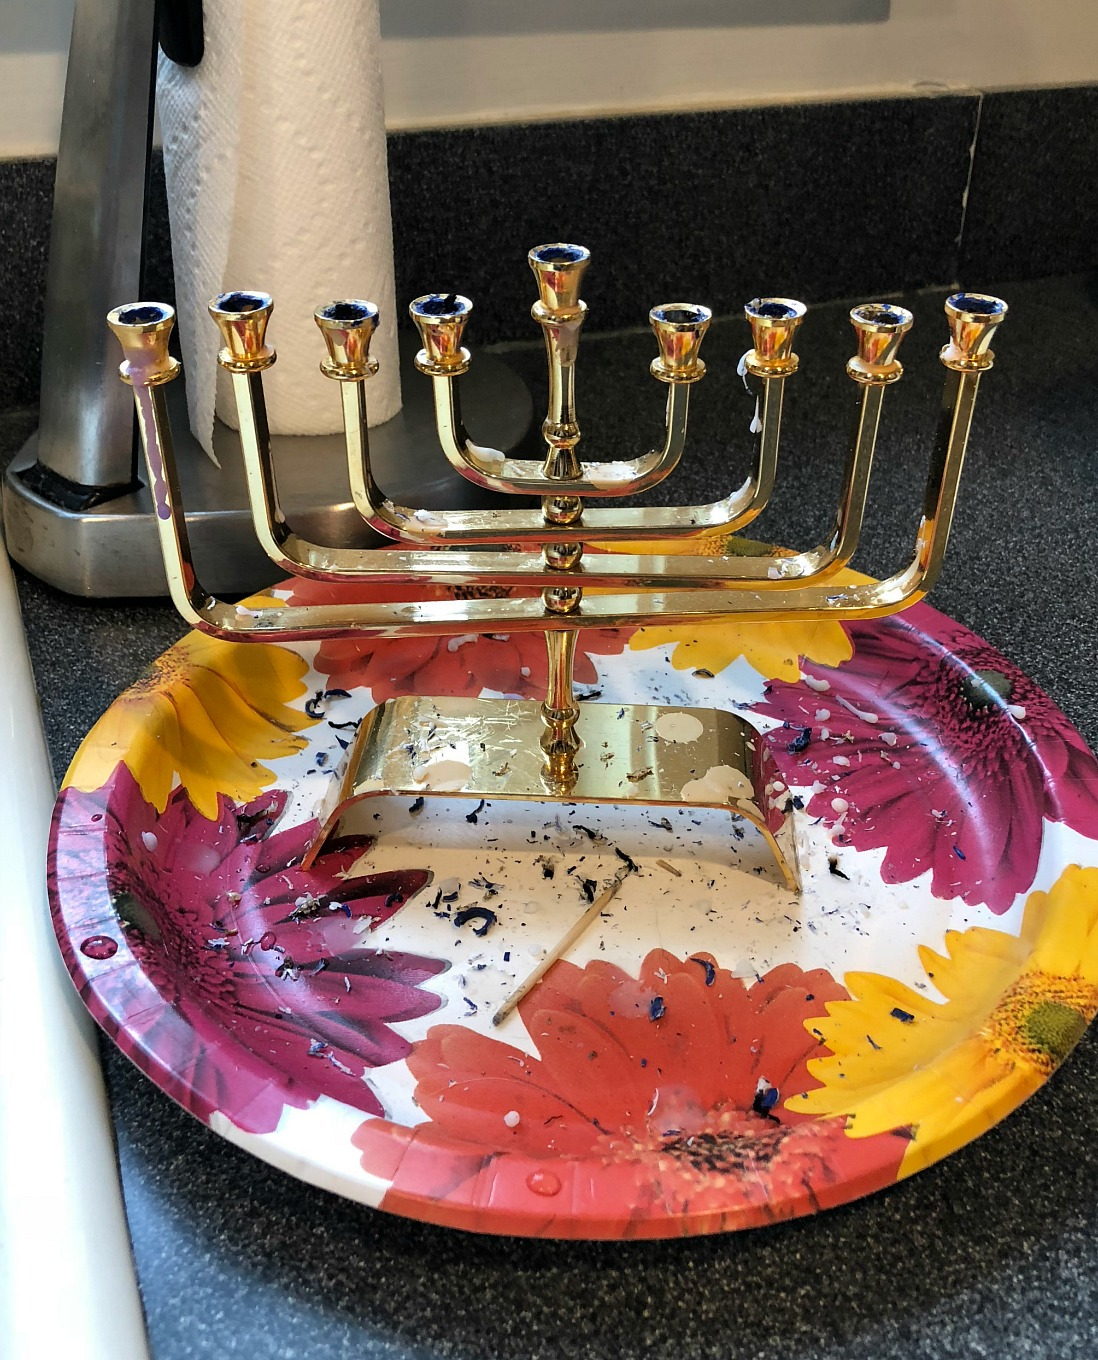 It's hard to clean wax off a menorah but I found the easiest way to clean wax off a menorah